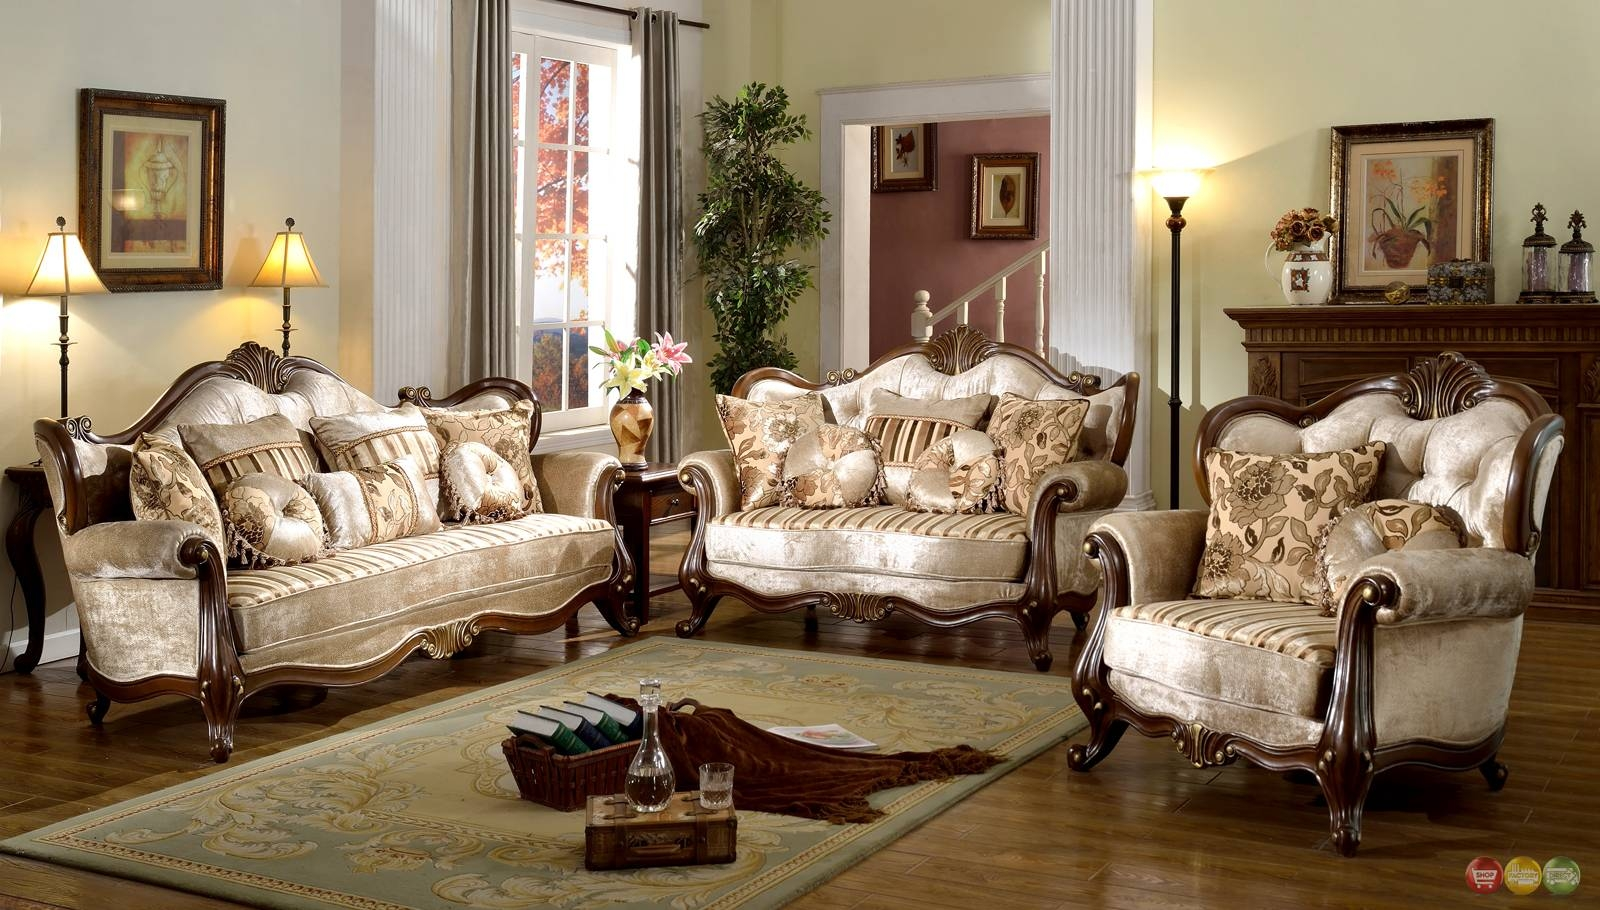 French Provincial Formal Antique Style Living Room Furniture Set in Living Room Sofa Chairs (Image 5 of 15)